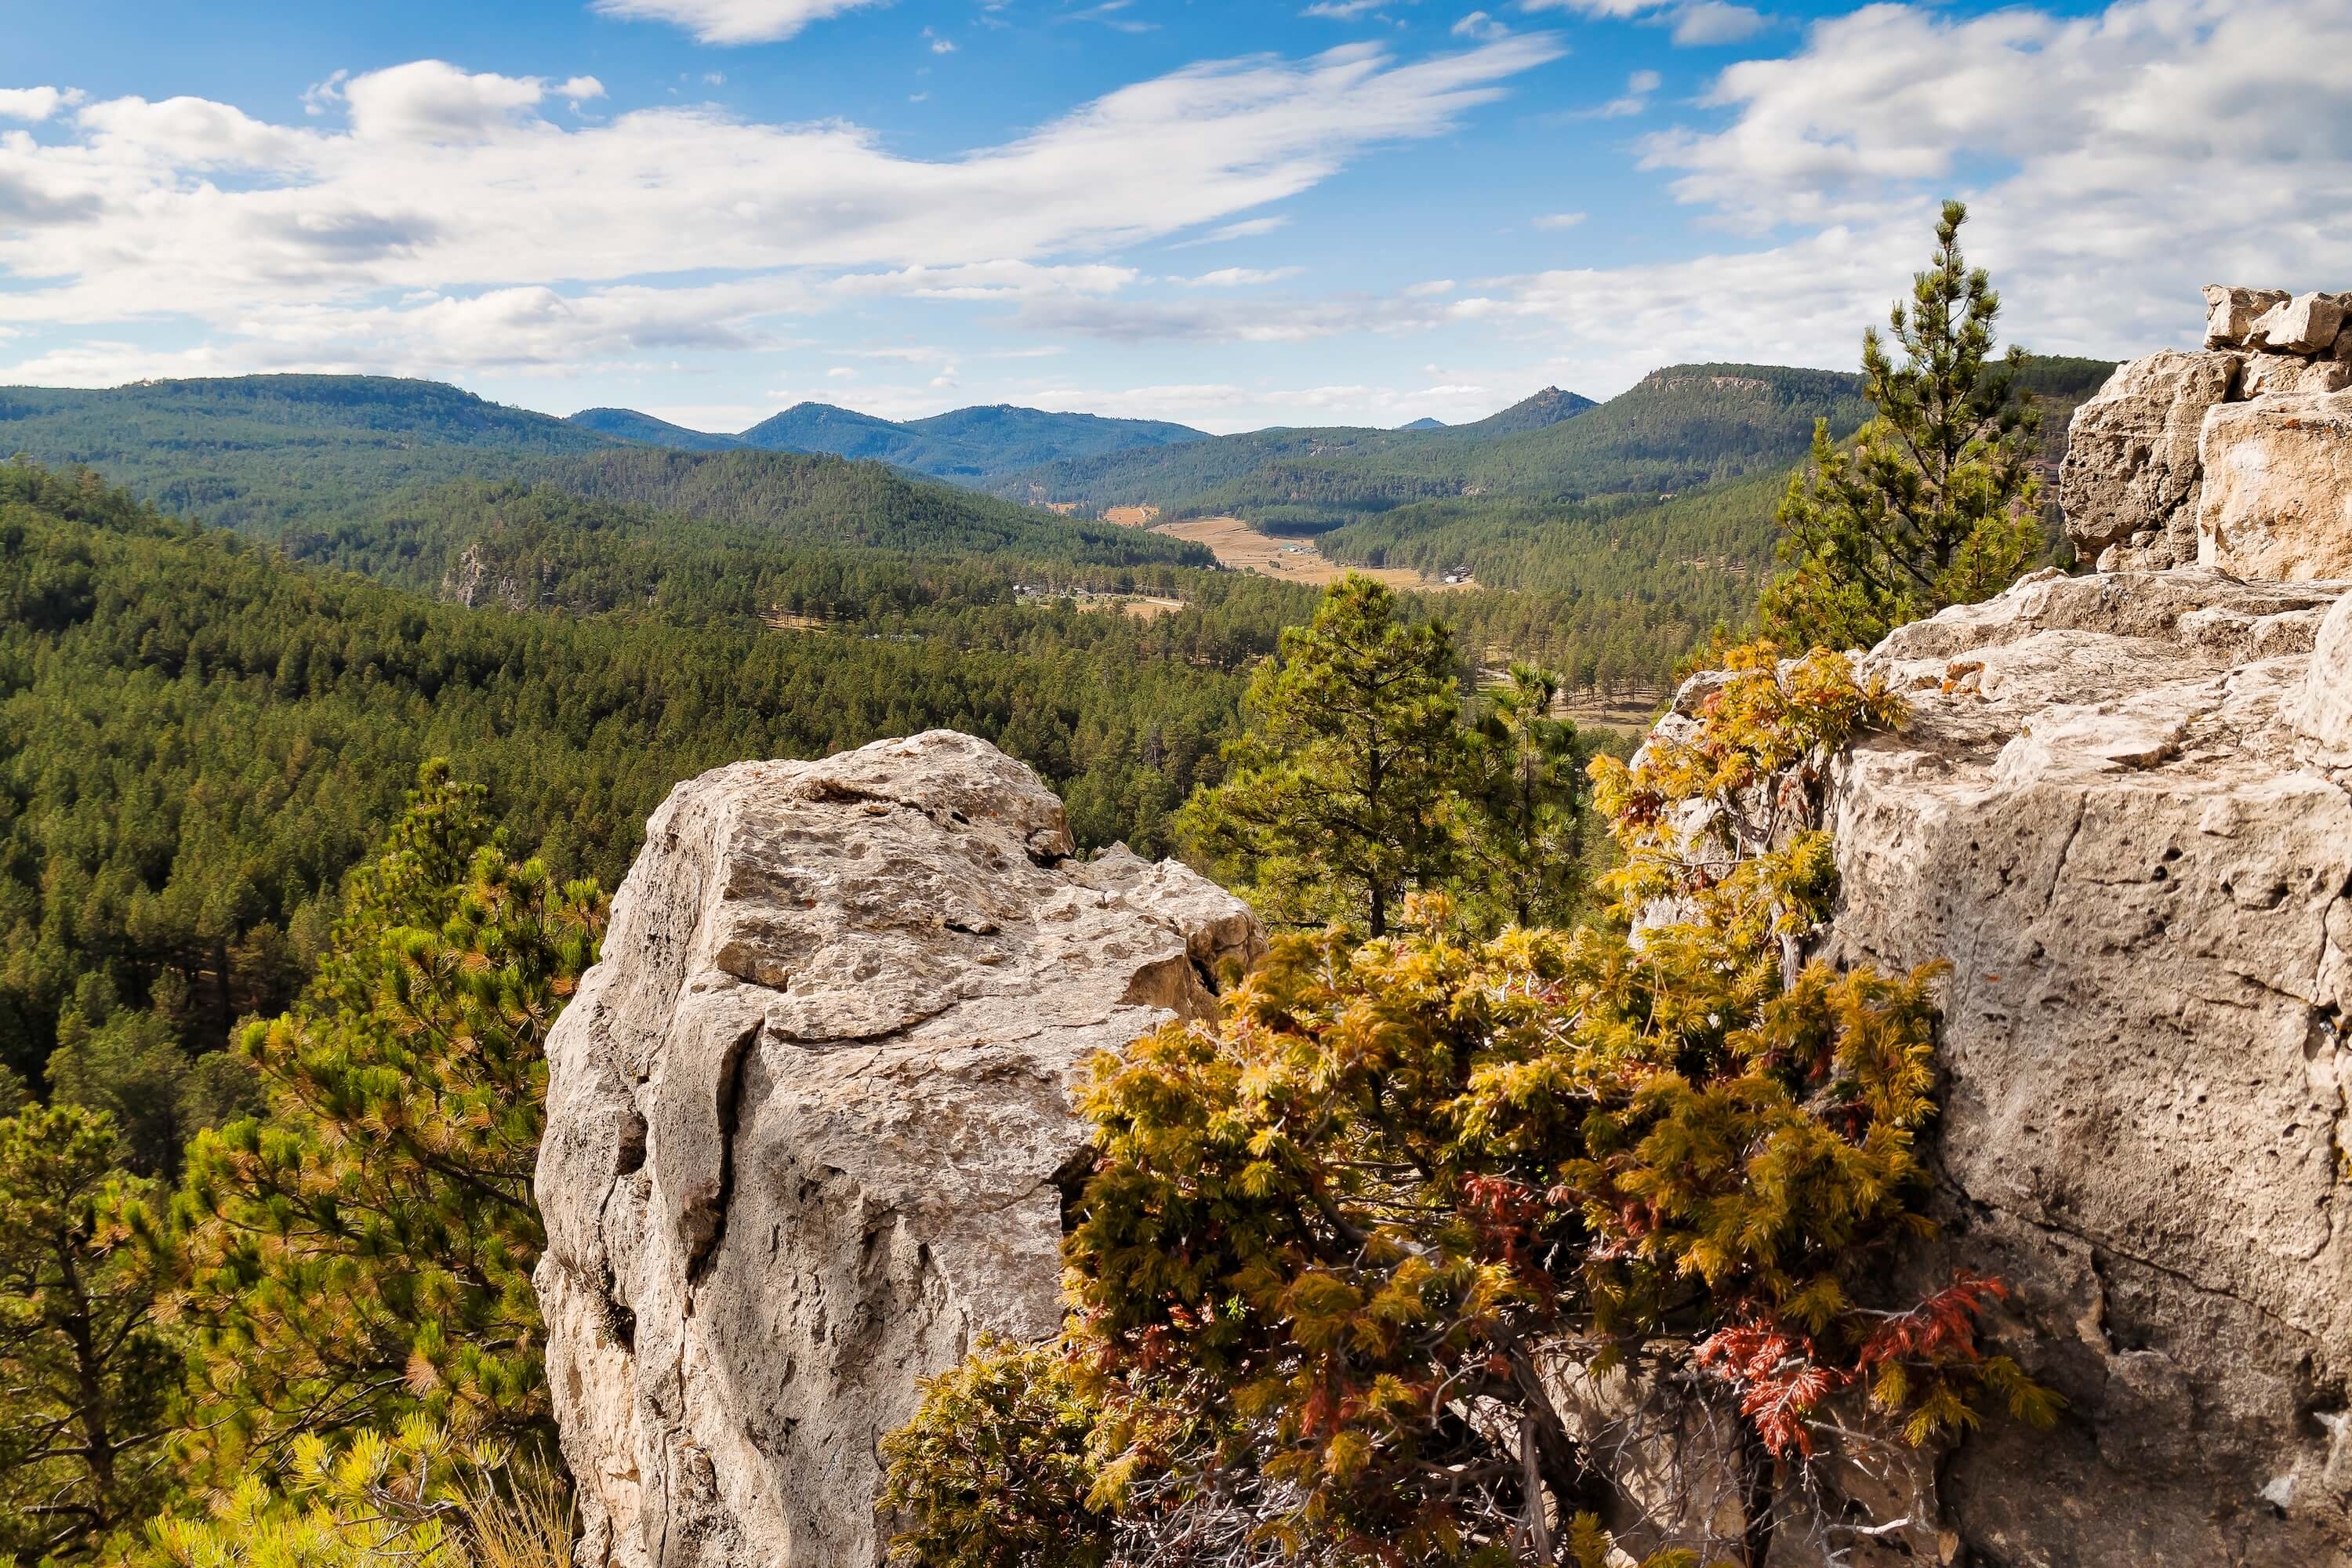 A late summer view of the Bogus Jim Canyon in the Black Hills